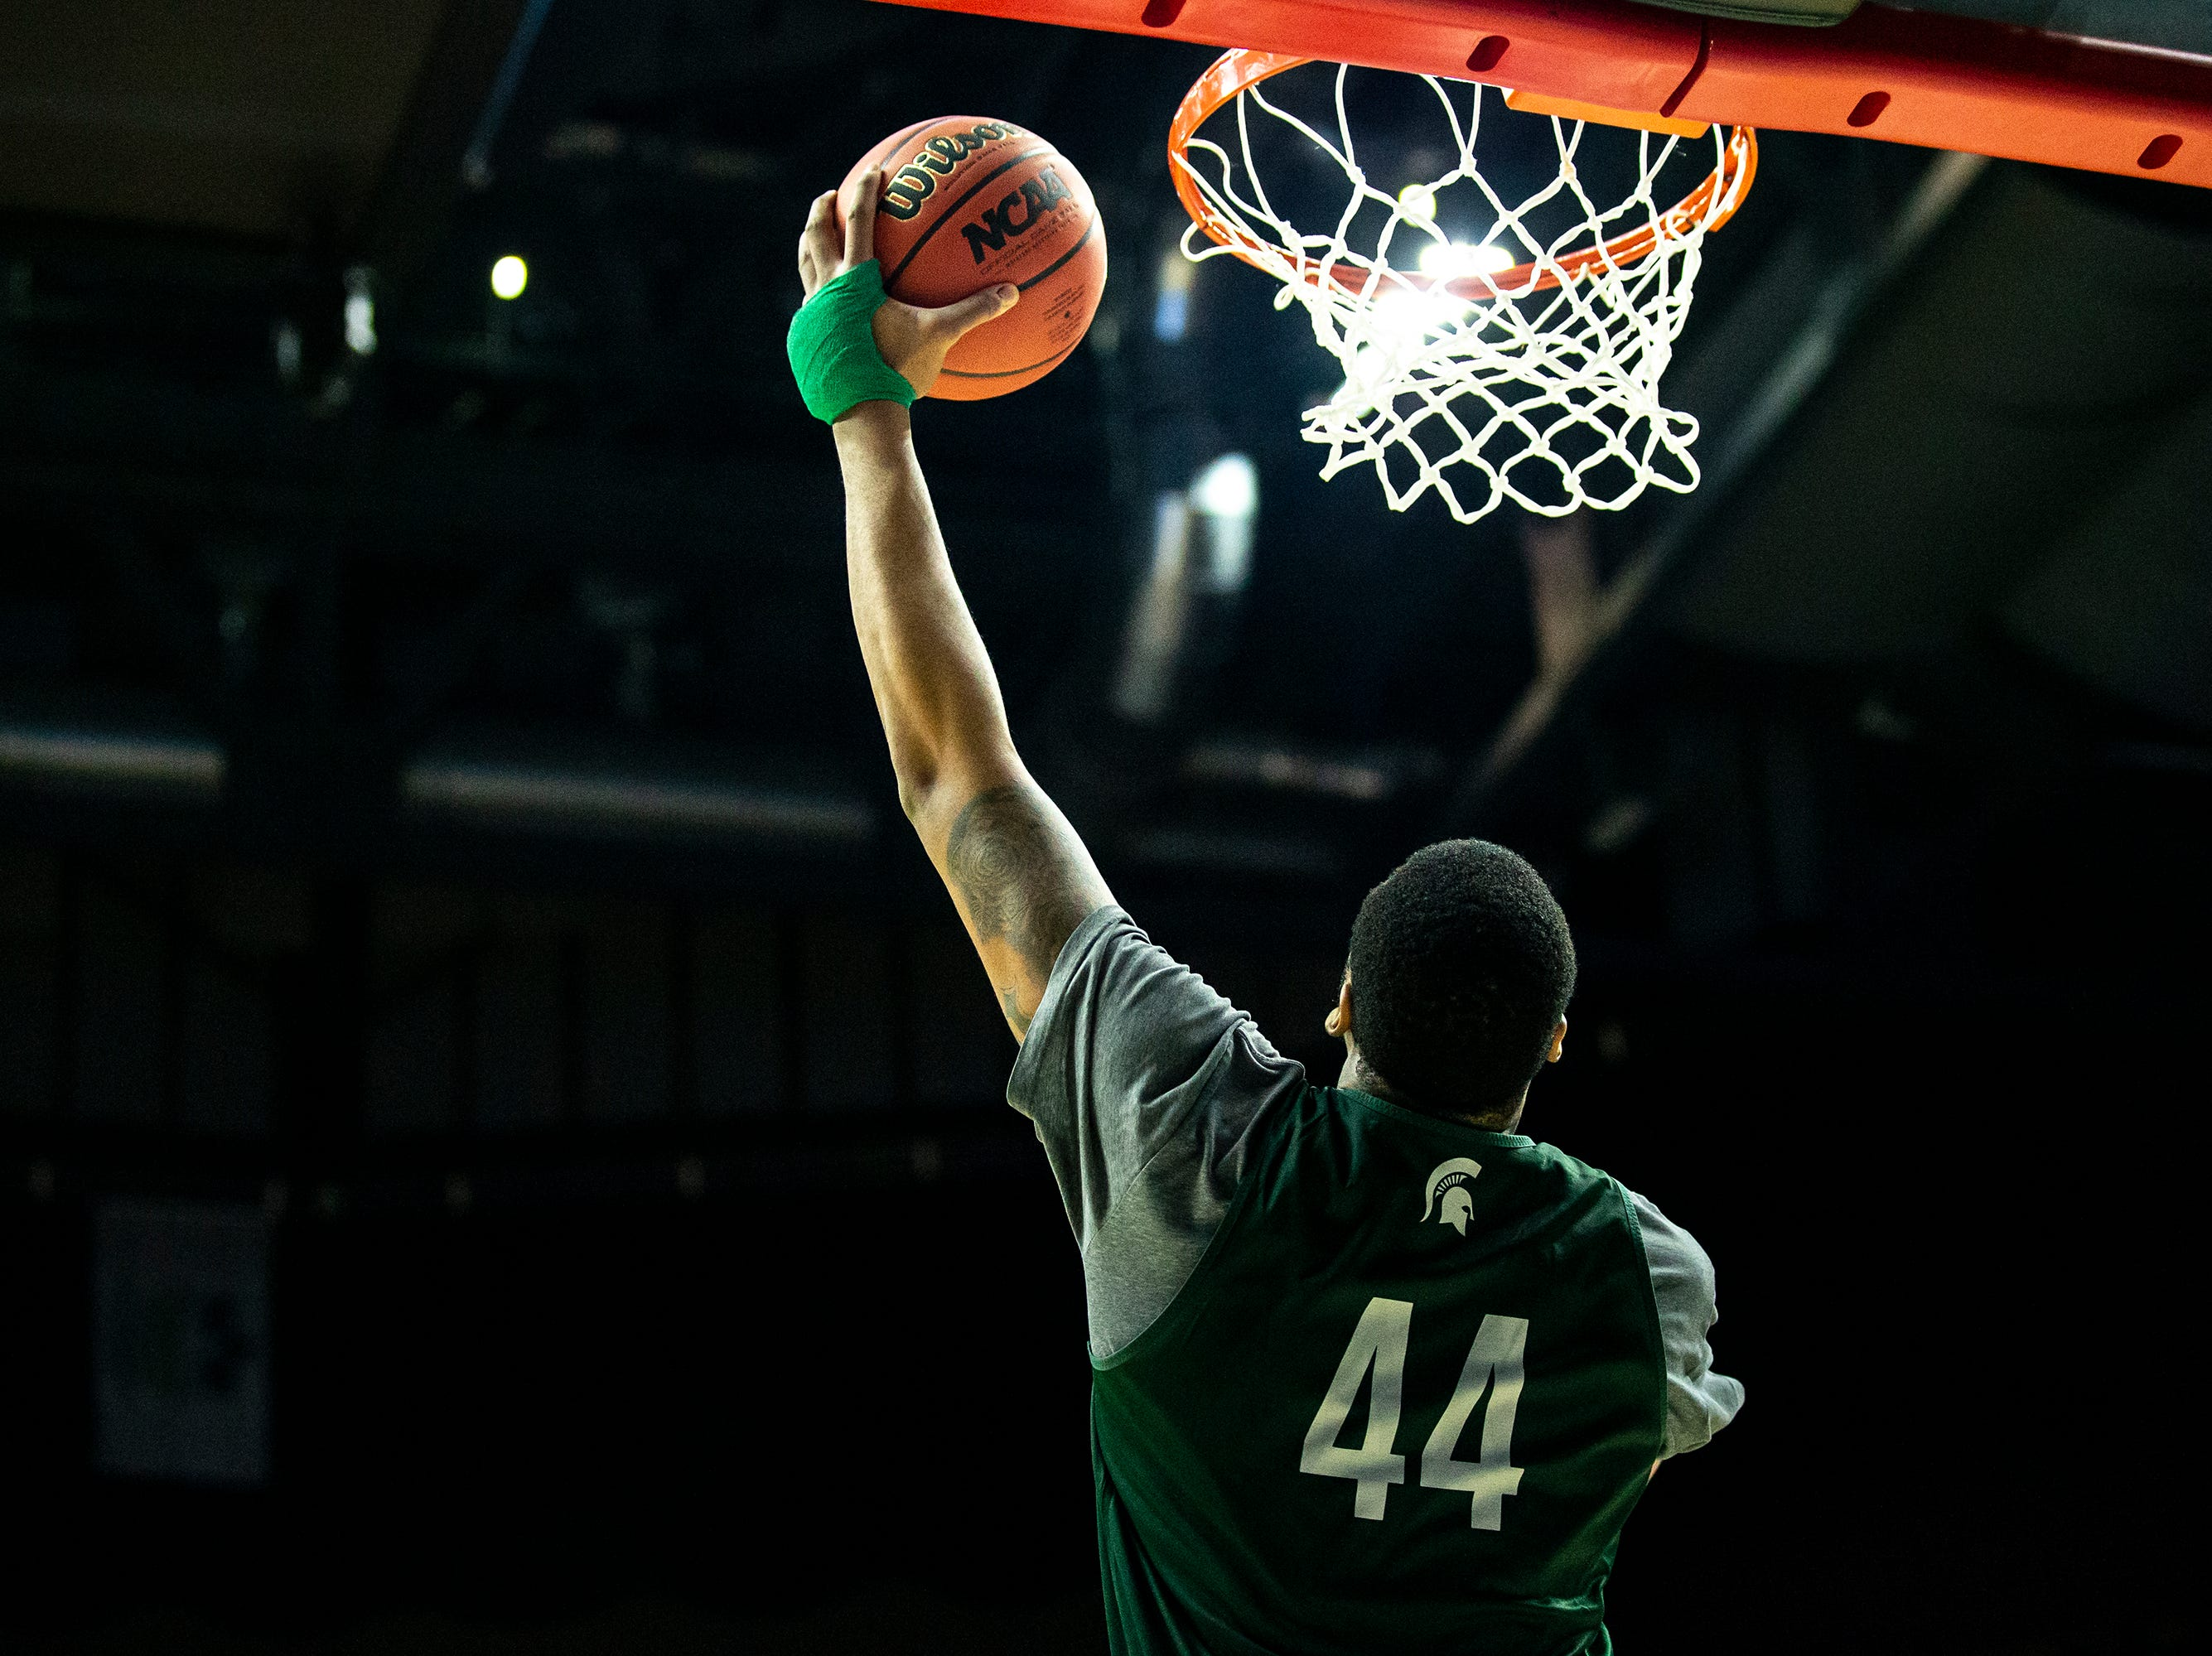 Michigan State's Nick Ward shoots the ball during Michigan State's open practice before the first round of the NCAA Men's Basketball Tournament on Wednesday, March 20, 2019, at Wells Fargo Arena in Des Moines, Iowa.